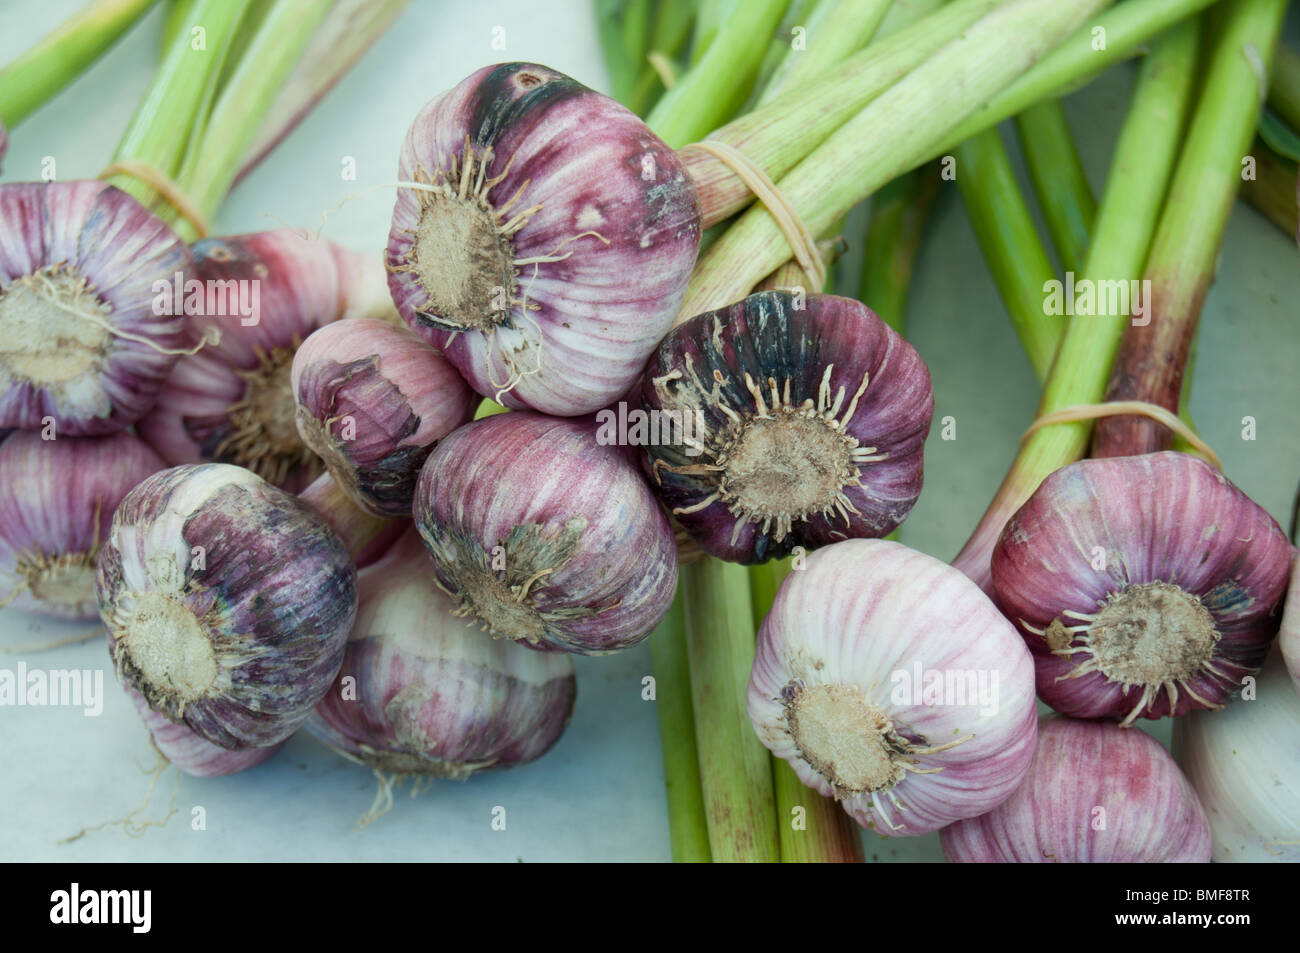 Garlic on sales at a farmer's market stall, Issaquah,Washinrton. - Stock Image